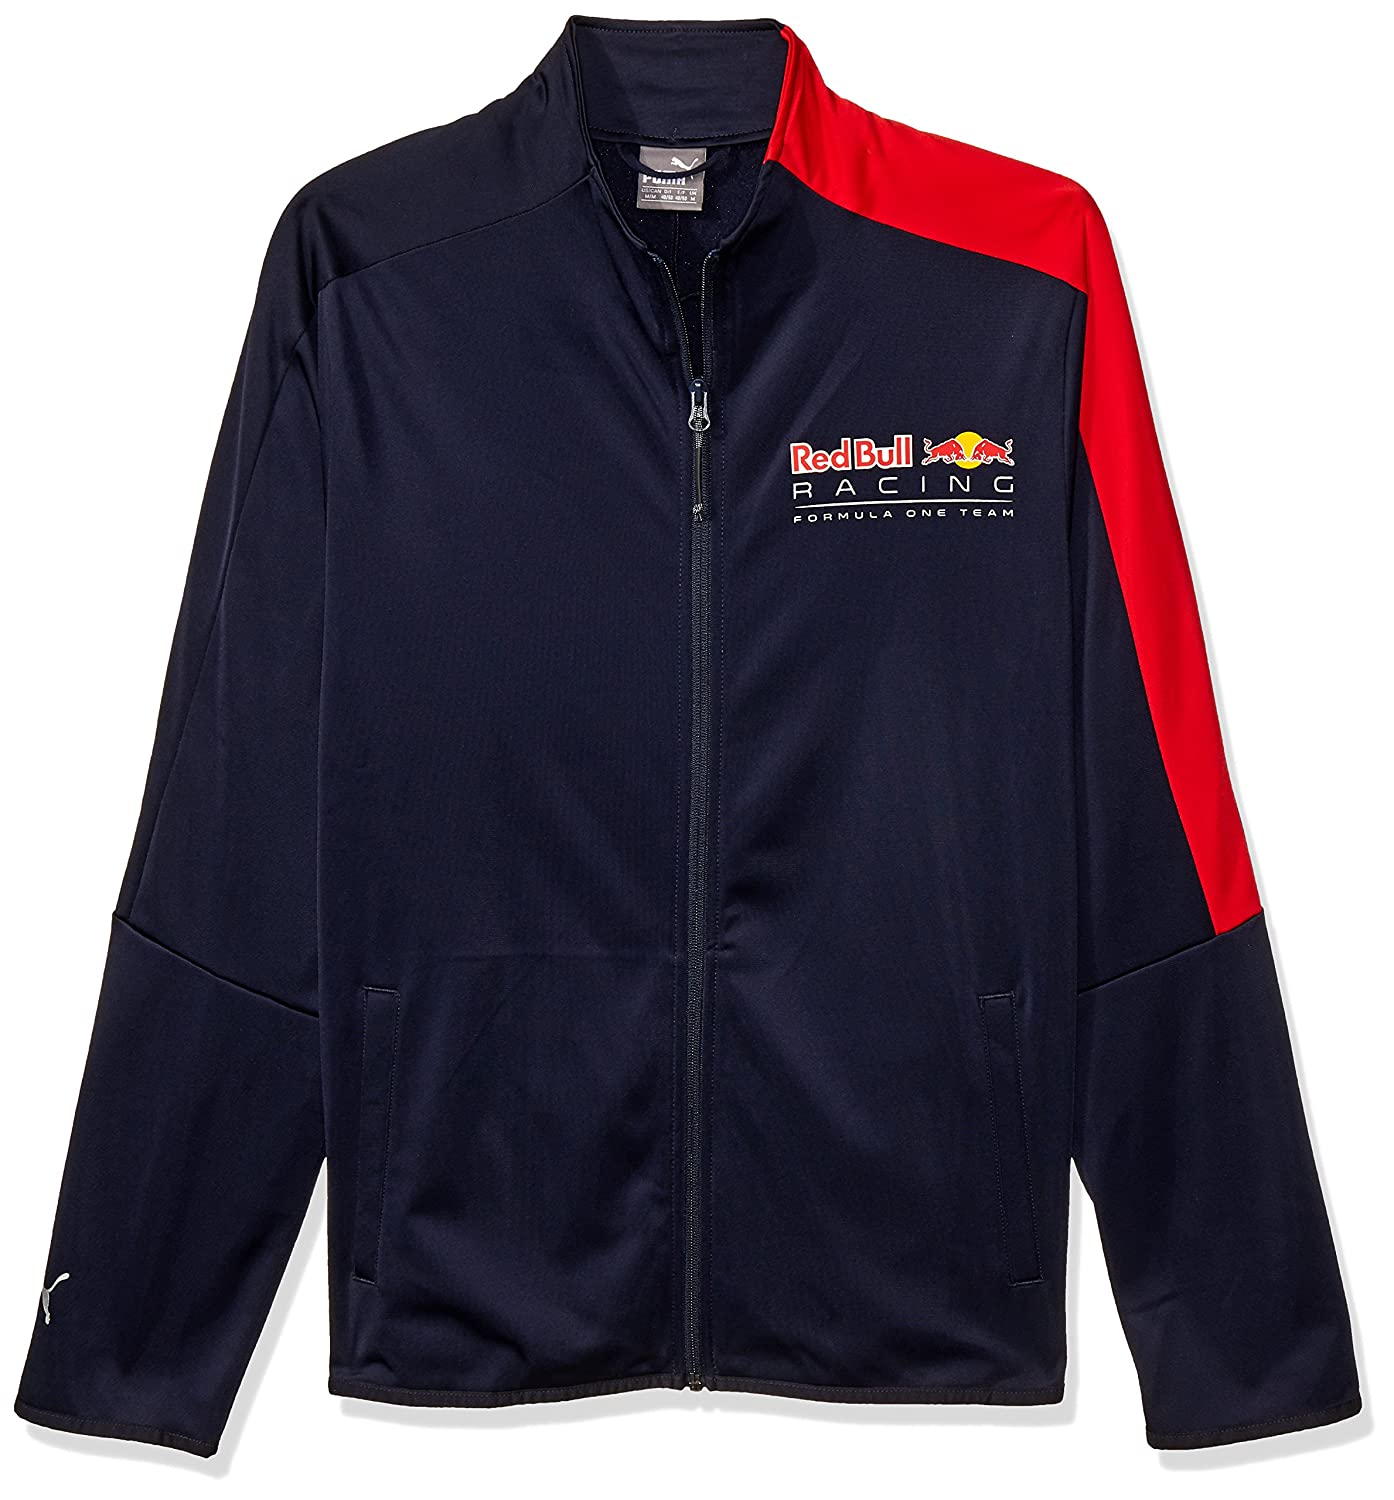 Amazon.com : PUMA Red Bull Racing Track Jacket : Clothing